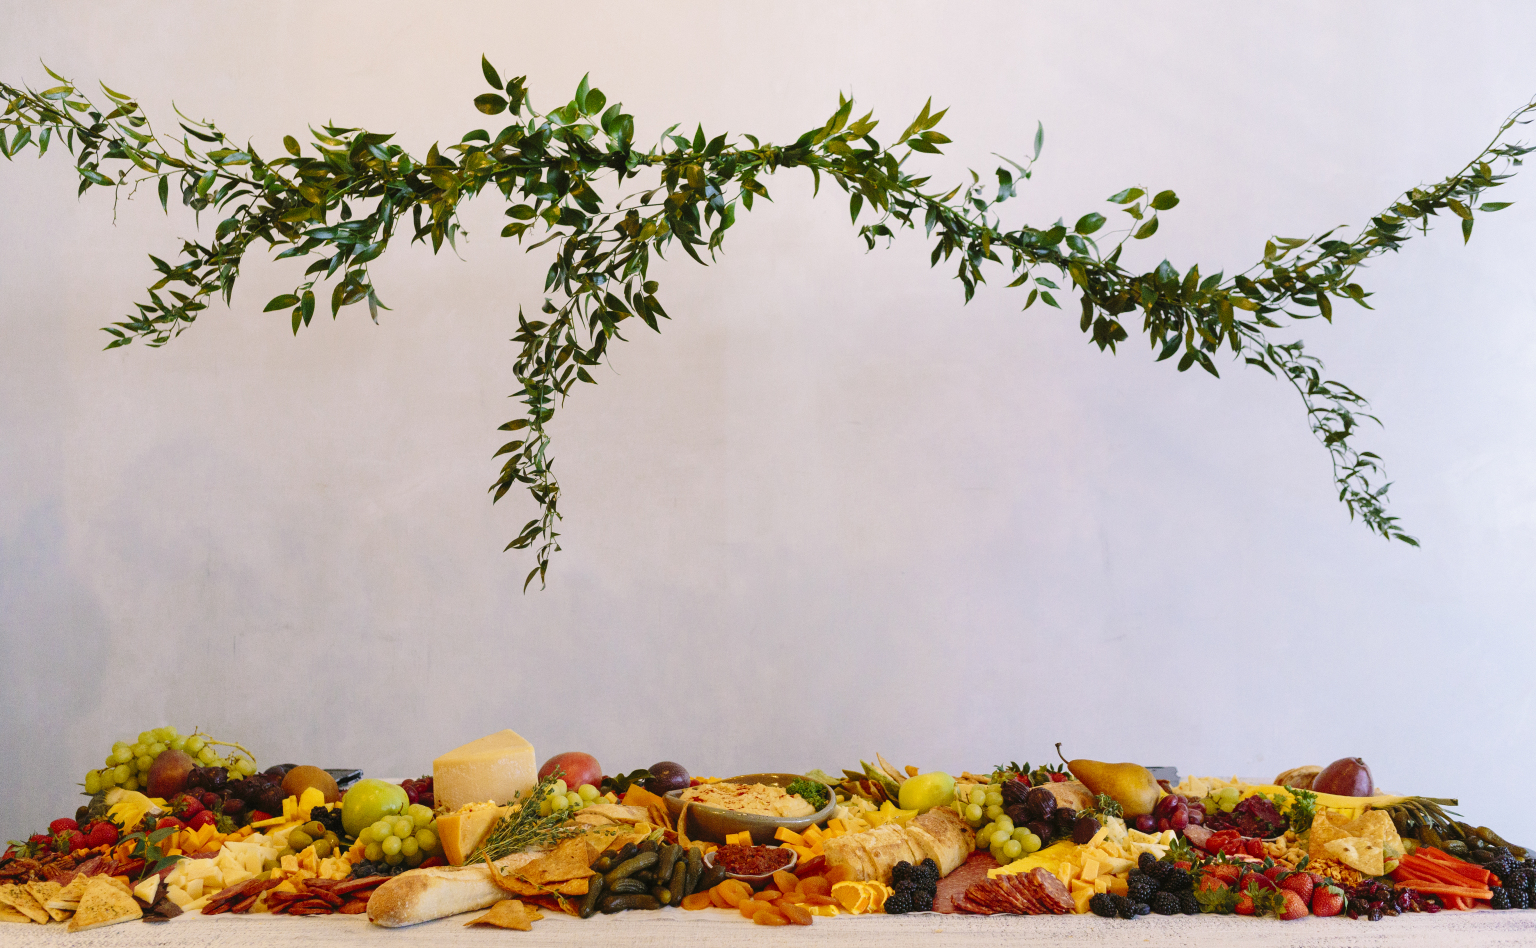 Chef's Market Grazing Table Wedding Food Trend featured on Nashville Bride Guide